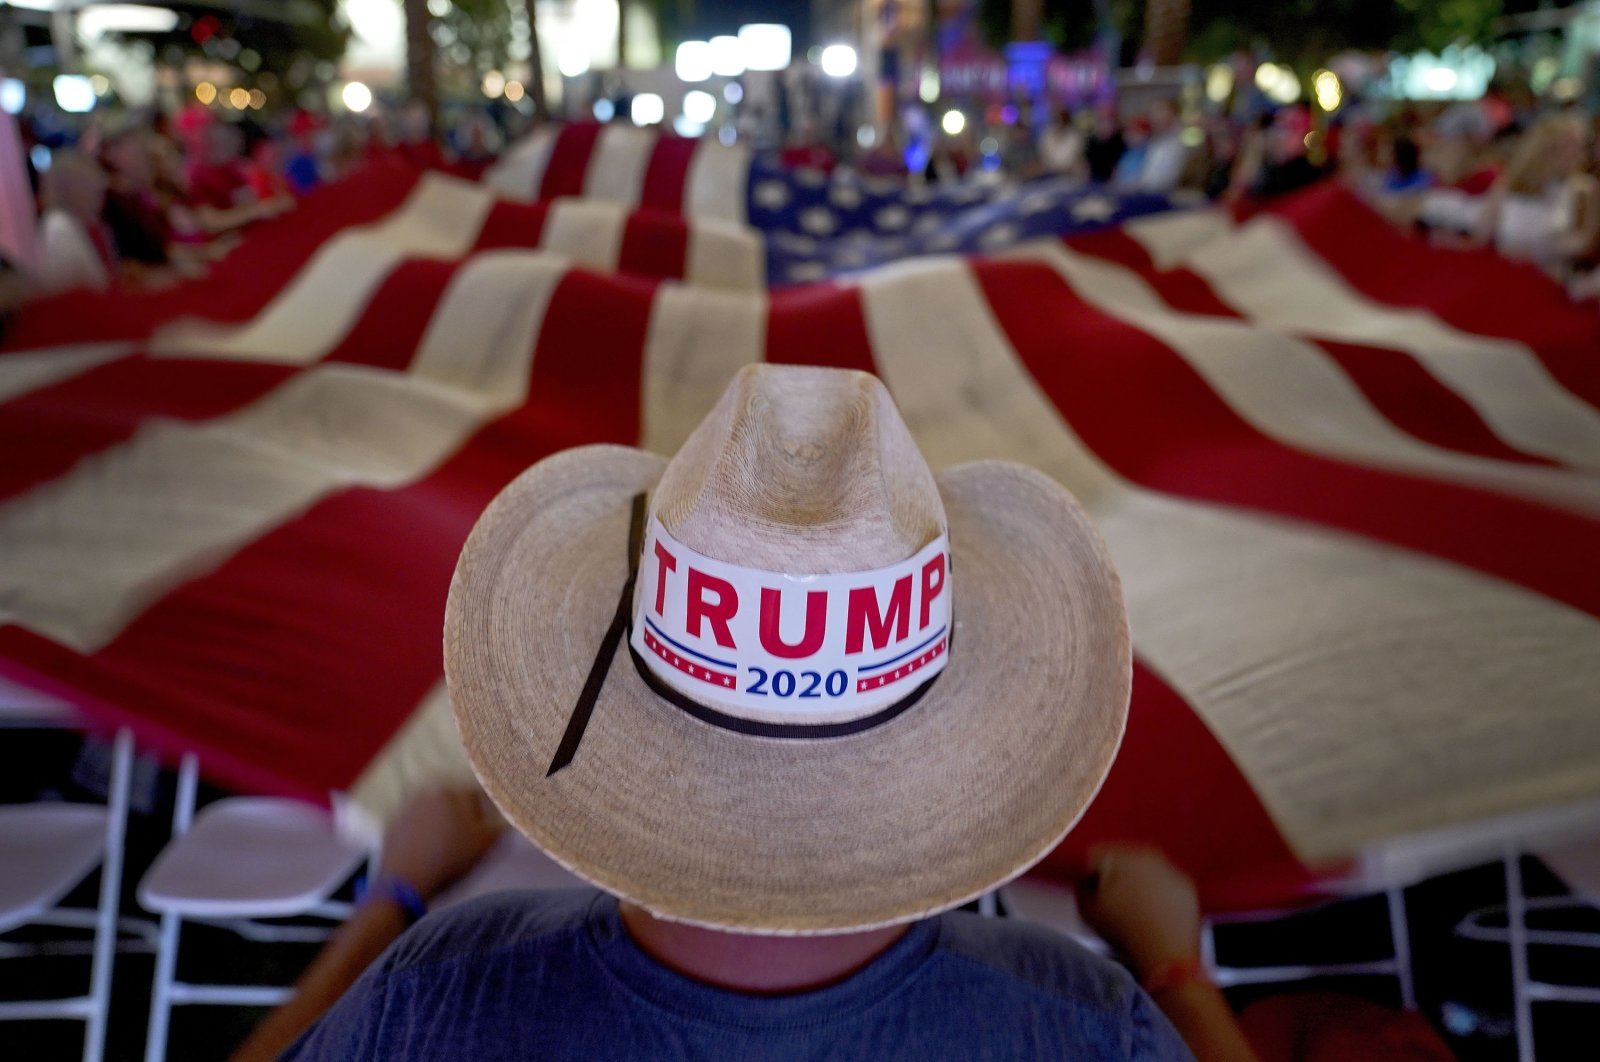 President Trump supporters wave a flag during an election watch party, Tuesday, Nov. 3, 2020, in Chandler, Ariz. (AP Photo)